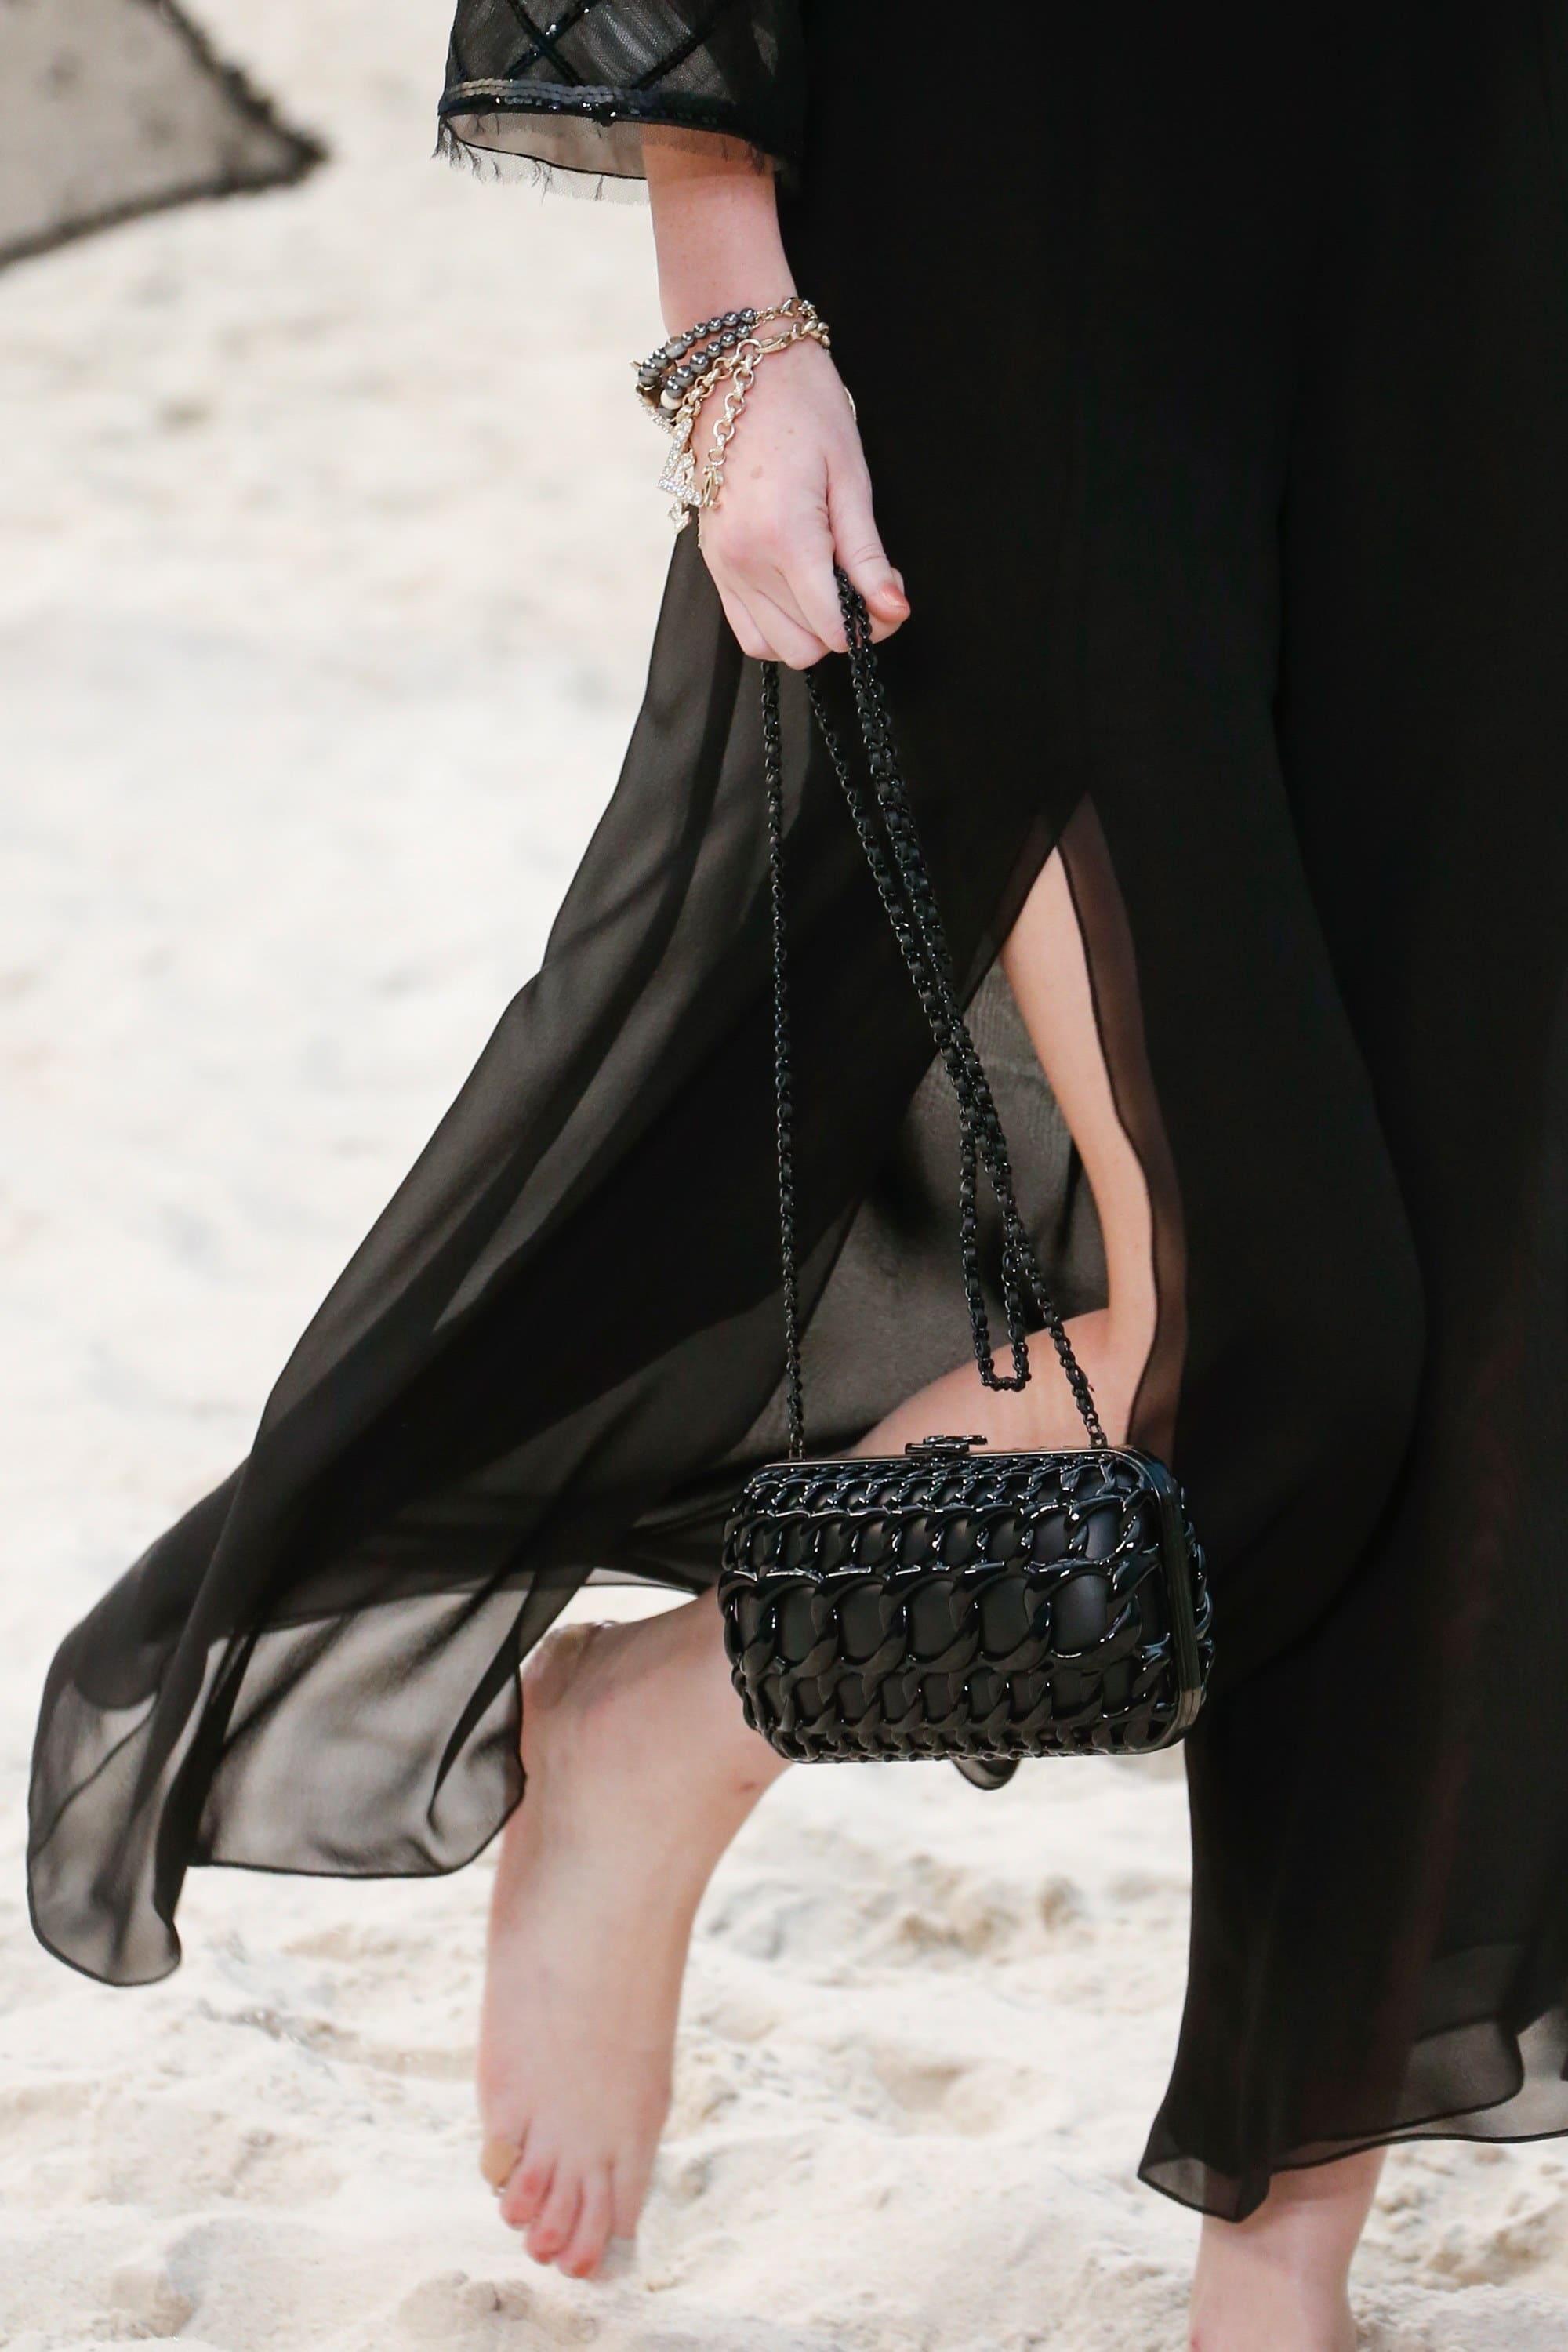 53de7cabf0f6 Chanel Spring Summer 2019 Runway Bag Collection - Chanel By The Sea ...